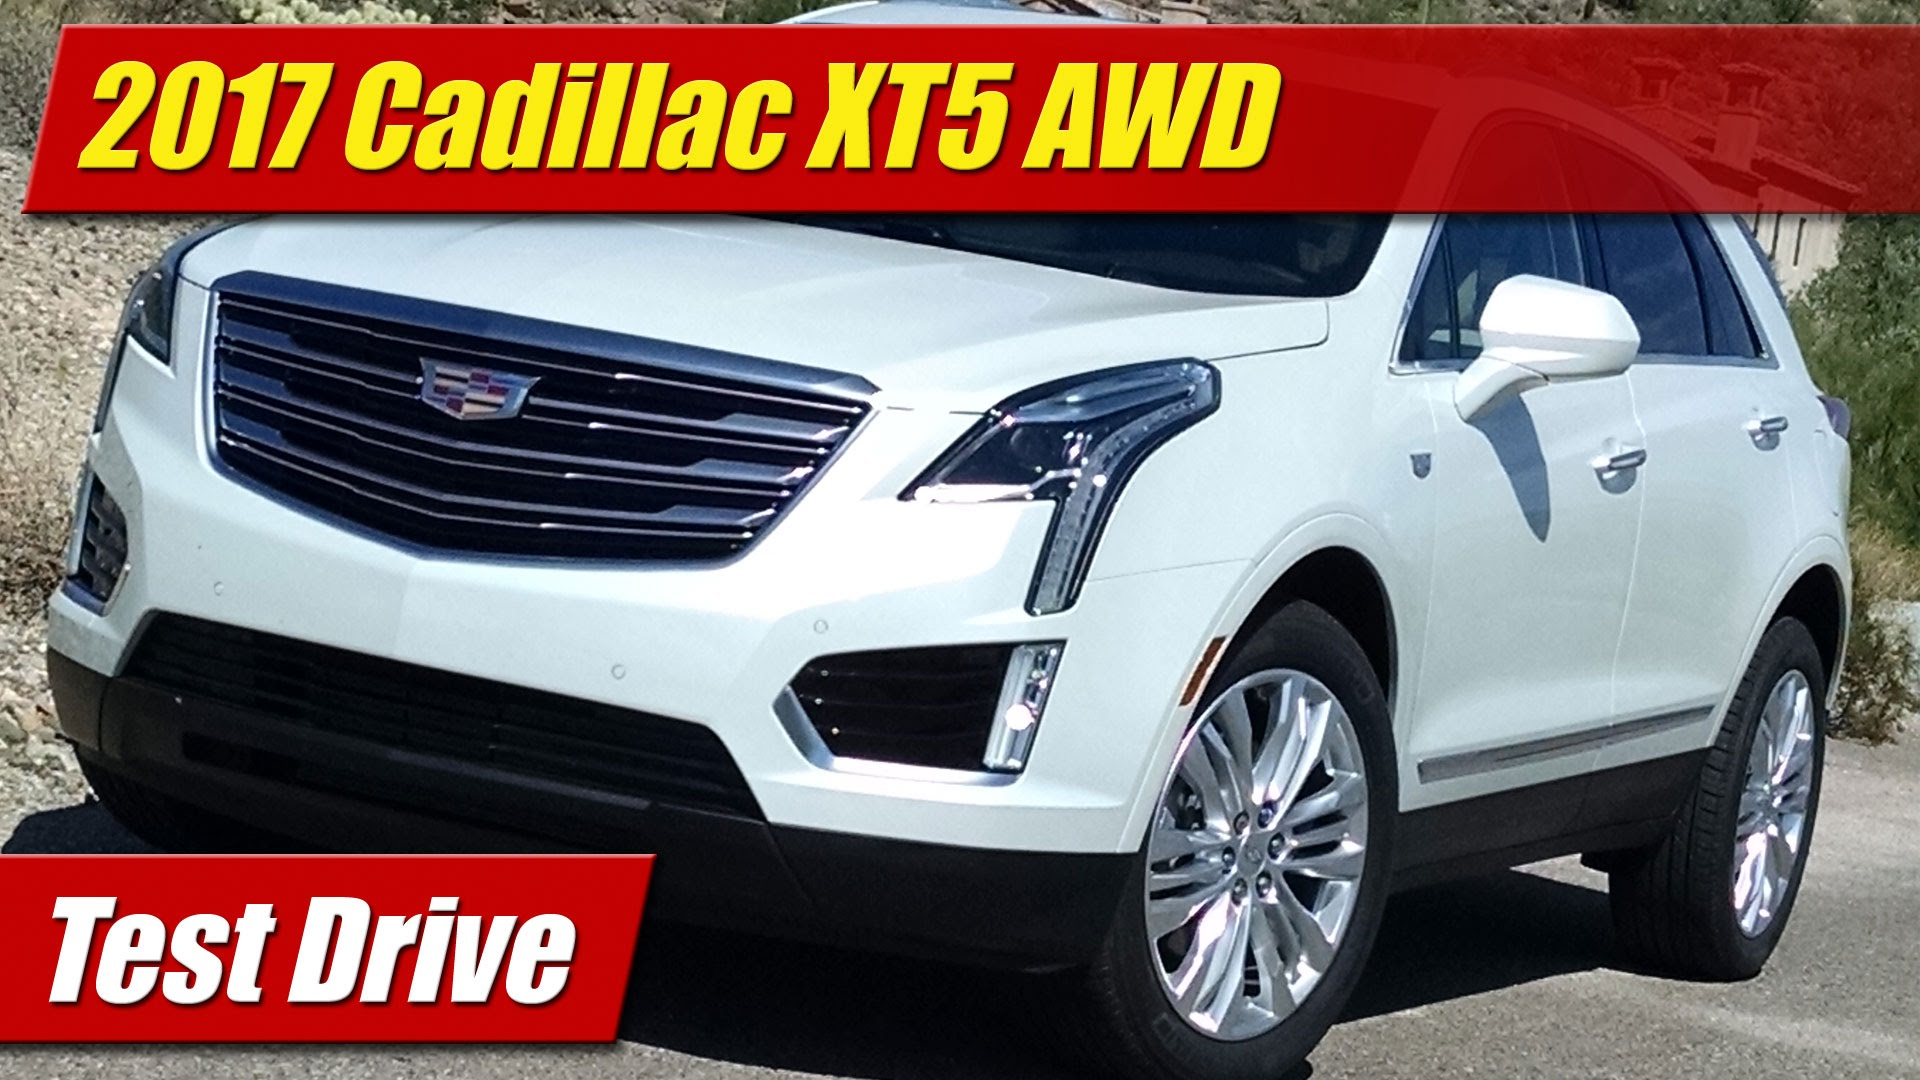 test drive 2017 cadillac xt5 awd testdriven tv. Black Bedroom Furniture Sets. Home Design Ideas